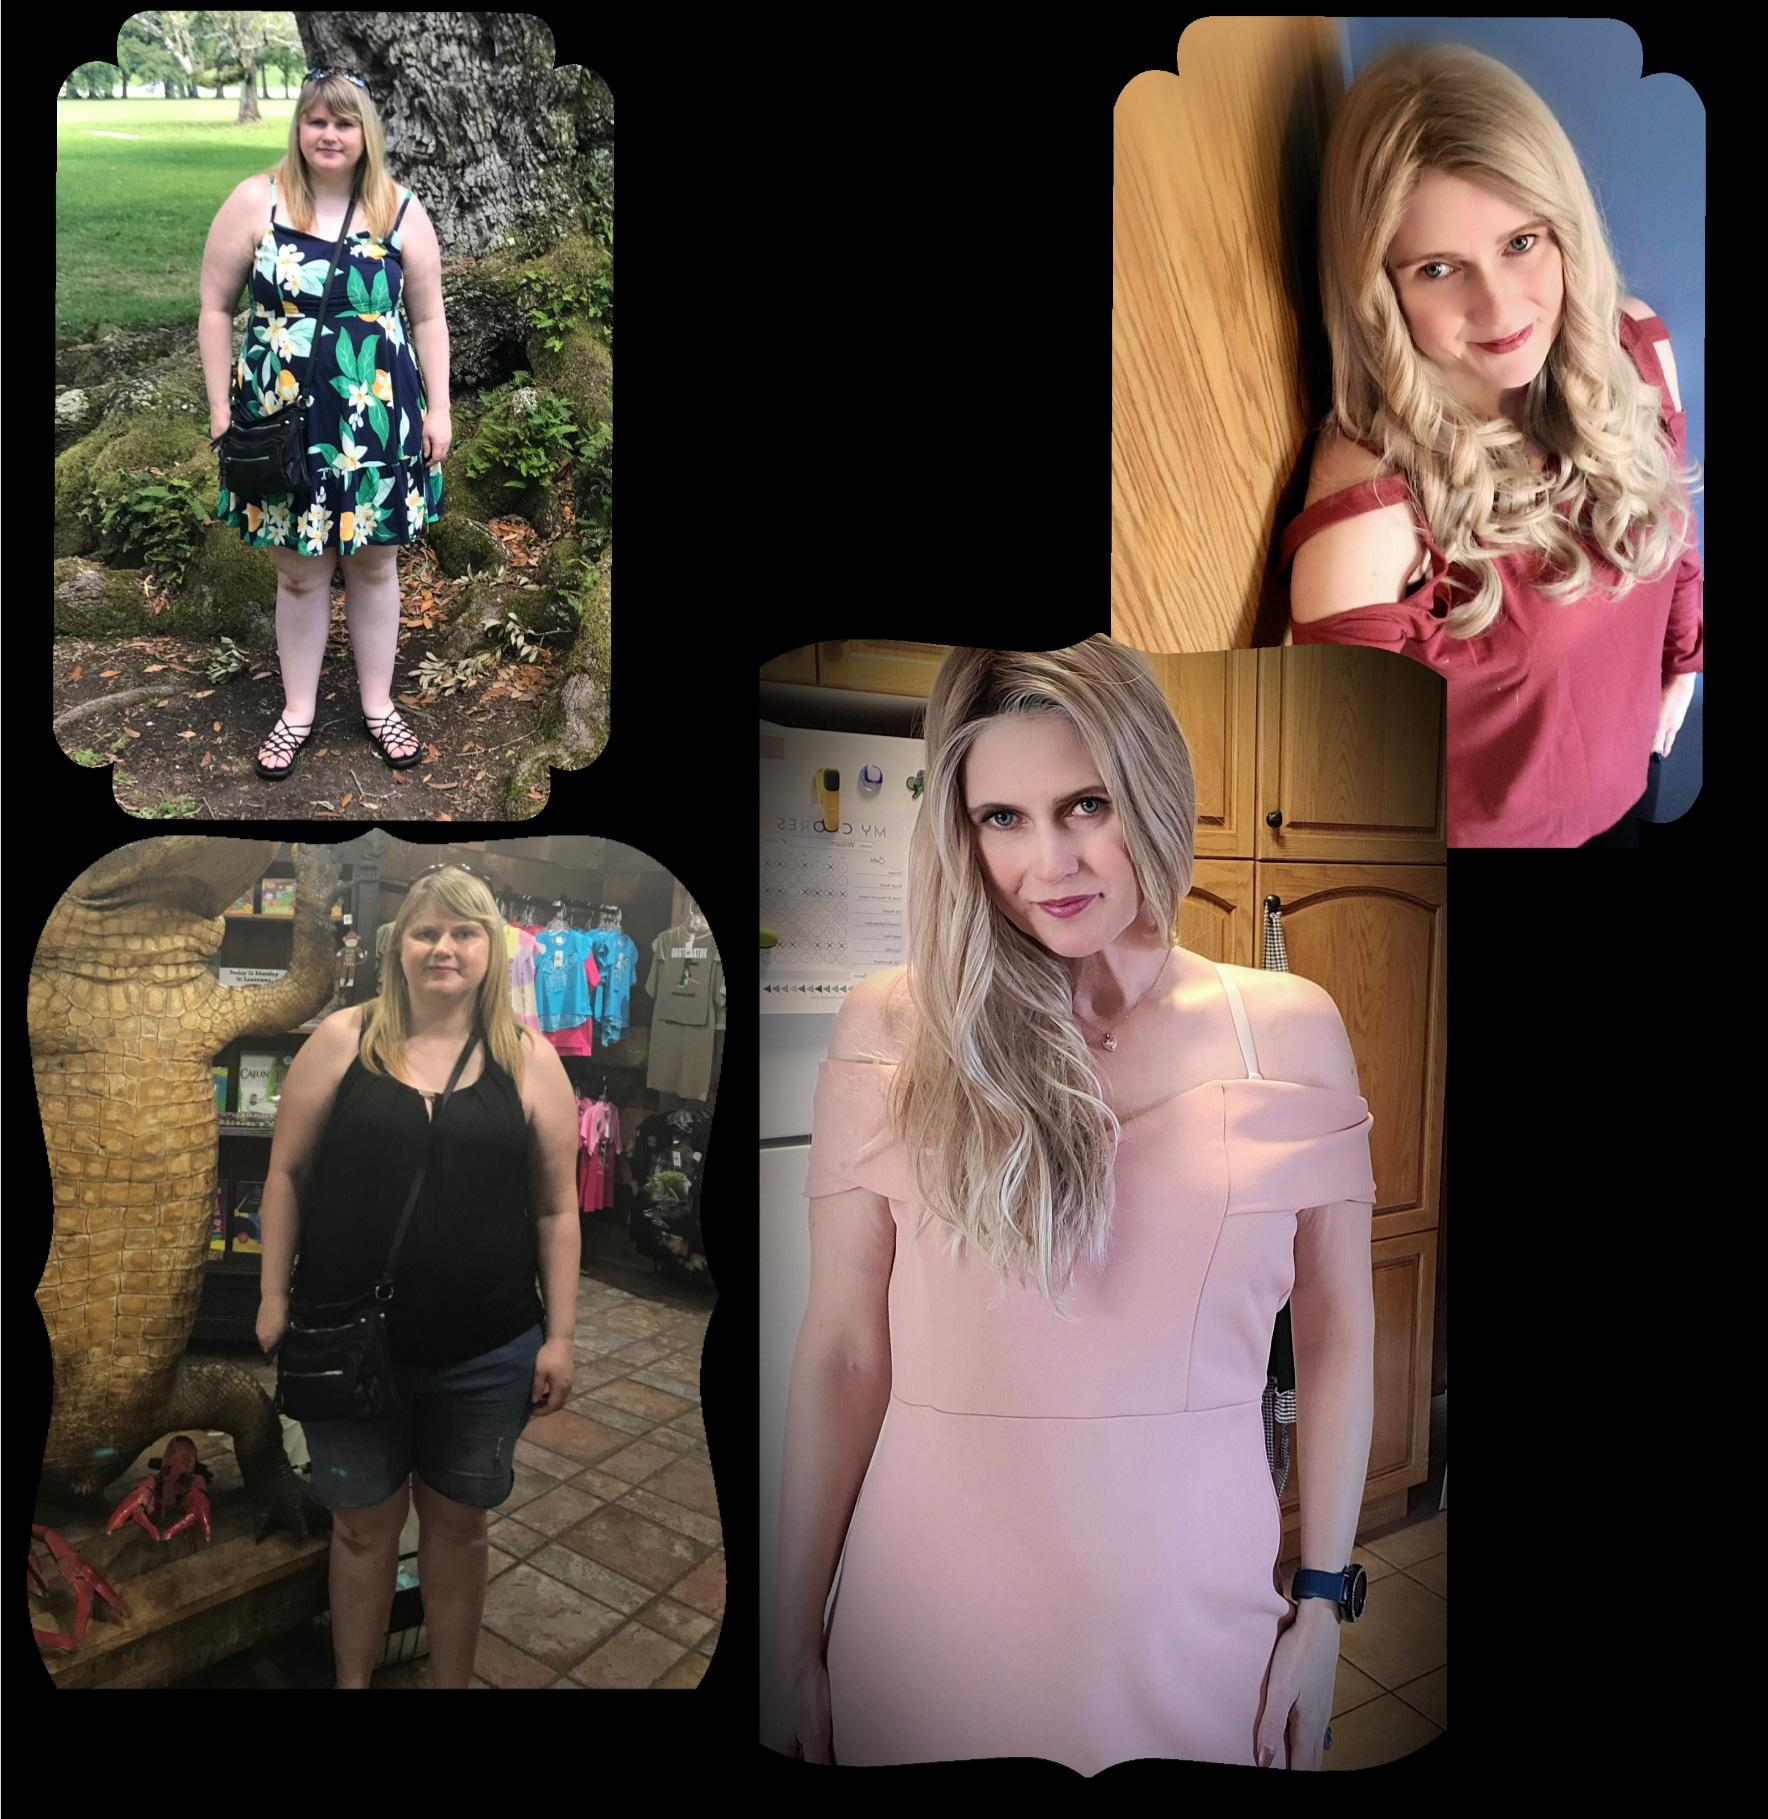 5 foot 7 Female 84 lbs Fat Loss Before and After 238 lbs to 154 lbs